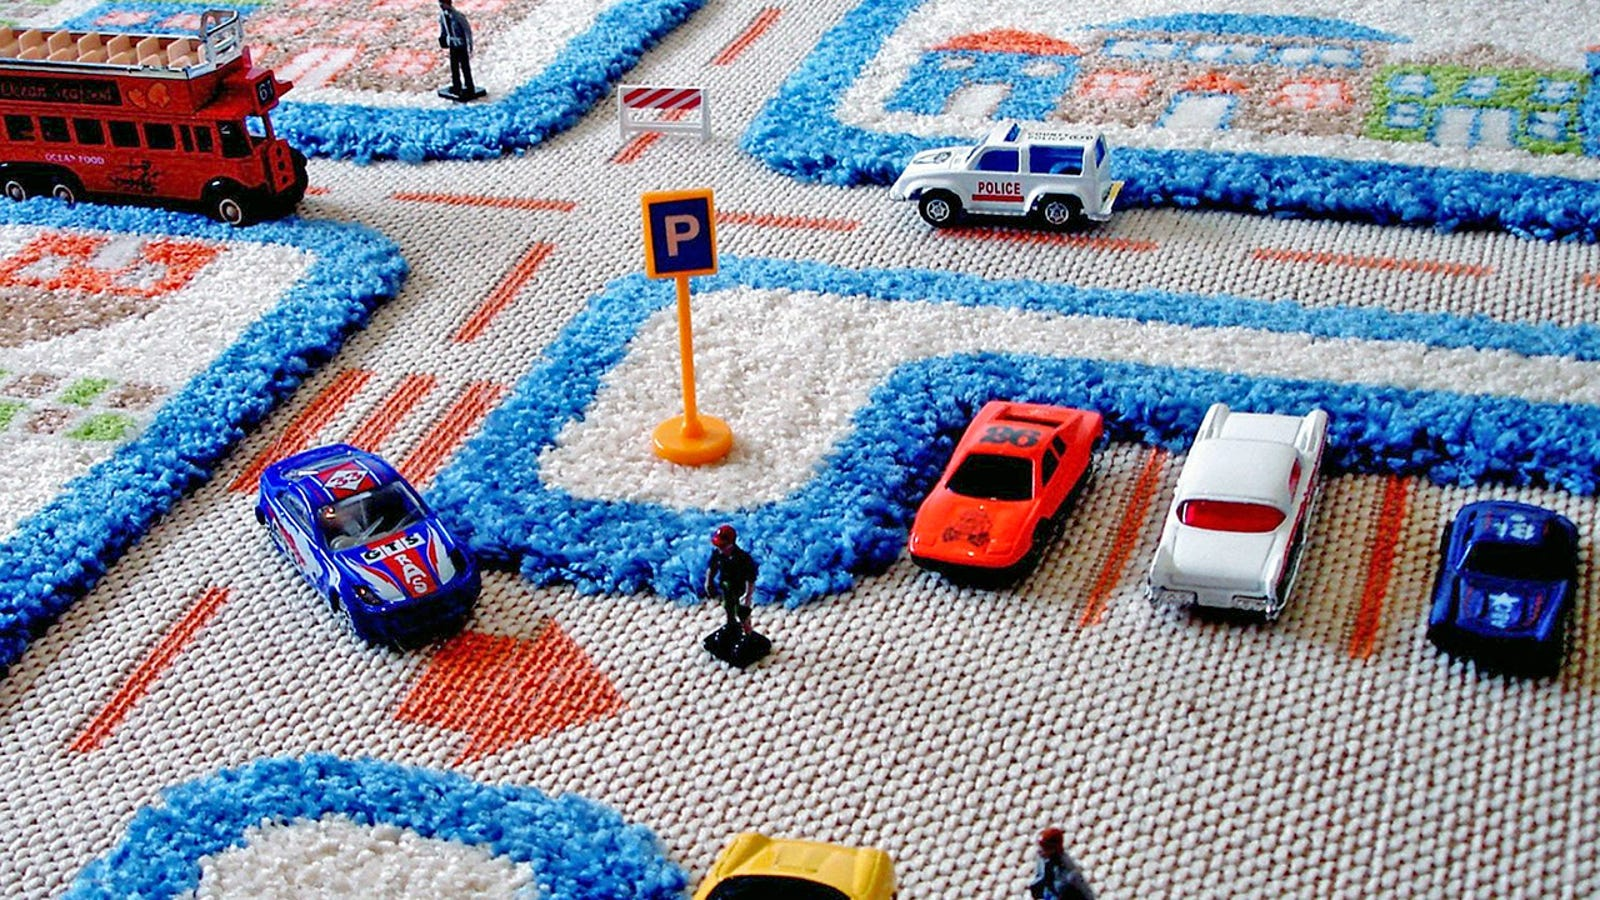 Hot Wheels Carpet Www Tollebild Com